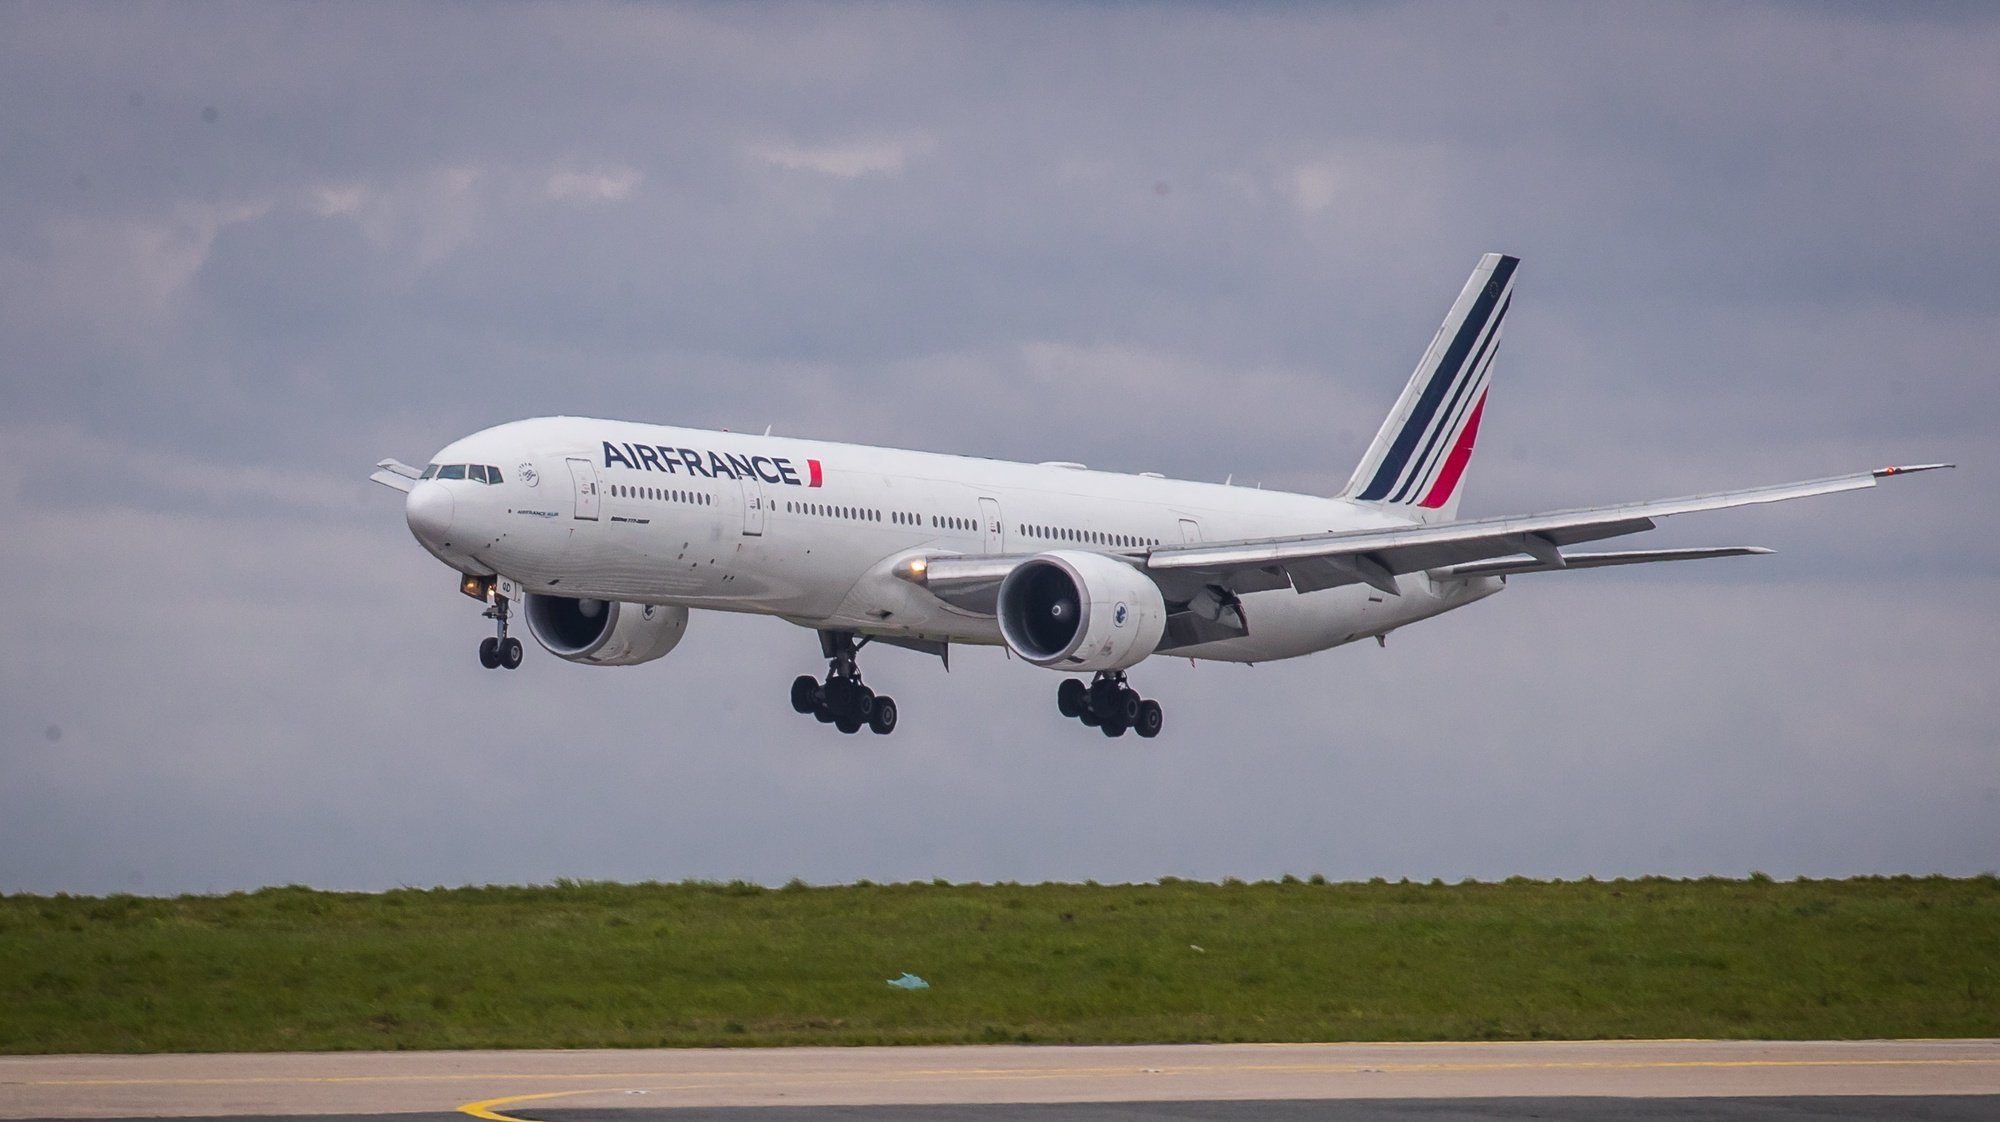 epa09130188 An Air France Boeing 777 take-off at Roissy Airport, near Paris, 11 April 2021 (issued 12 April 2021). Airline company Air France KLM Cargo, operated two flies to Cameroon and Colombia with a shipment of Chinese covid19 vaccines SinoPharm and SinoVac through its cargo area of Roissy airport (CDG).  EPA/CHRISTOPHE PETIT TESSON